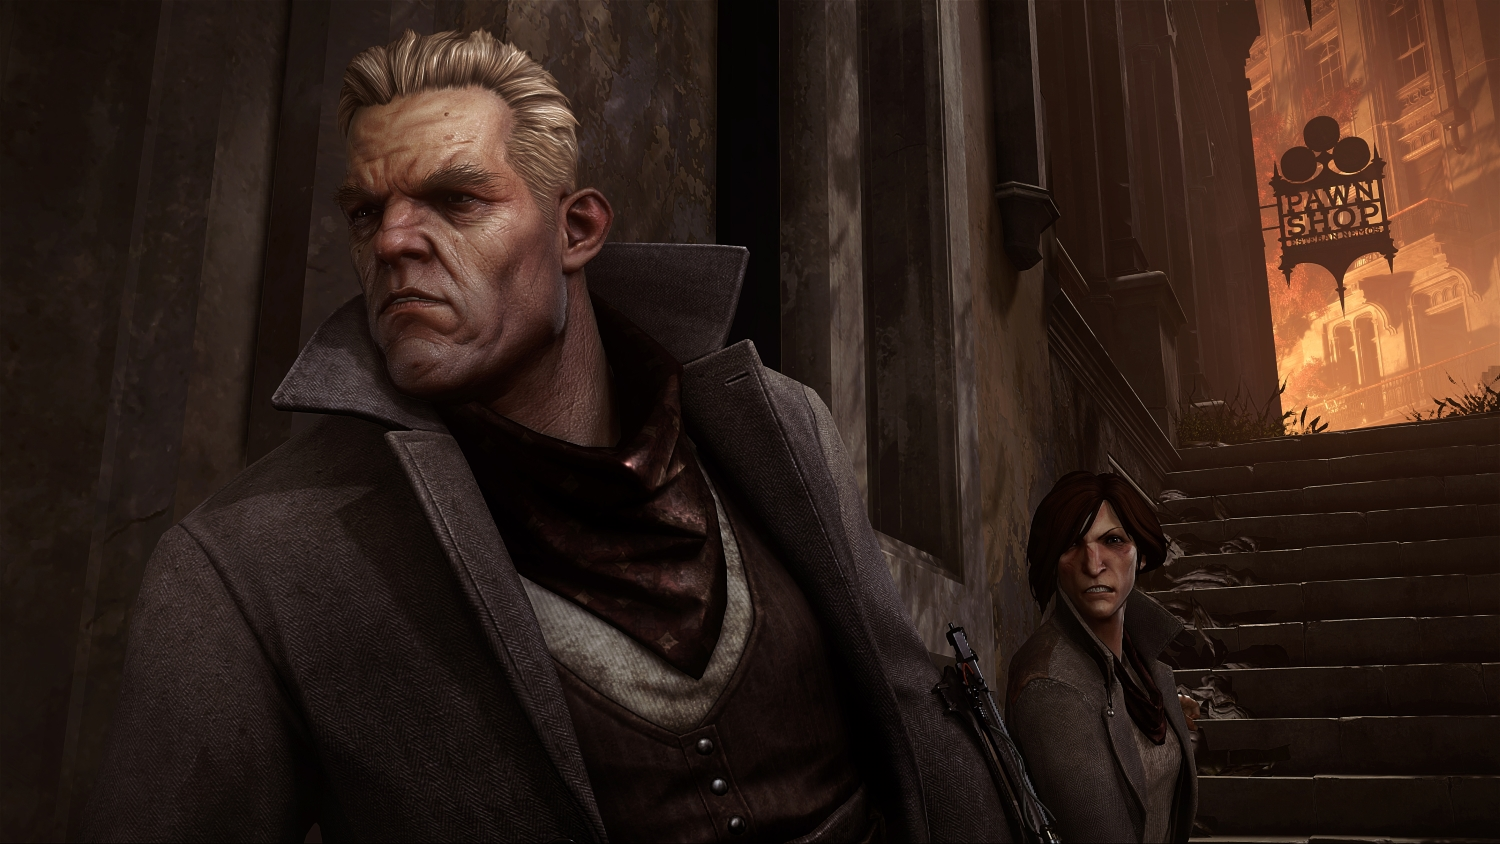 Dishonored 2 - violence is not the only option